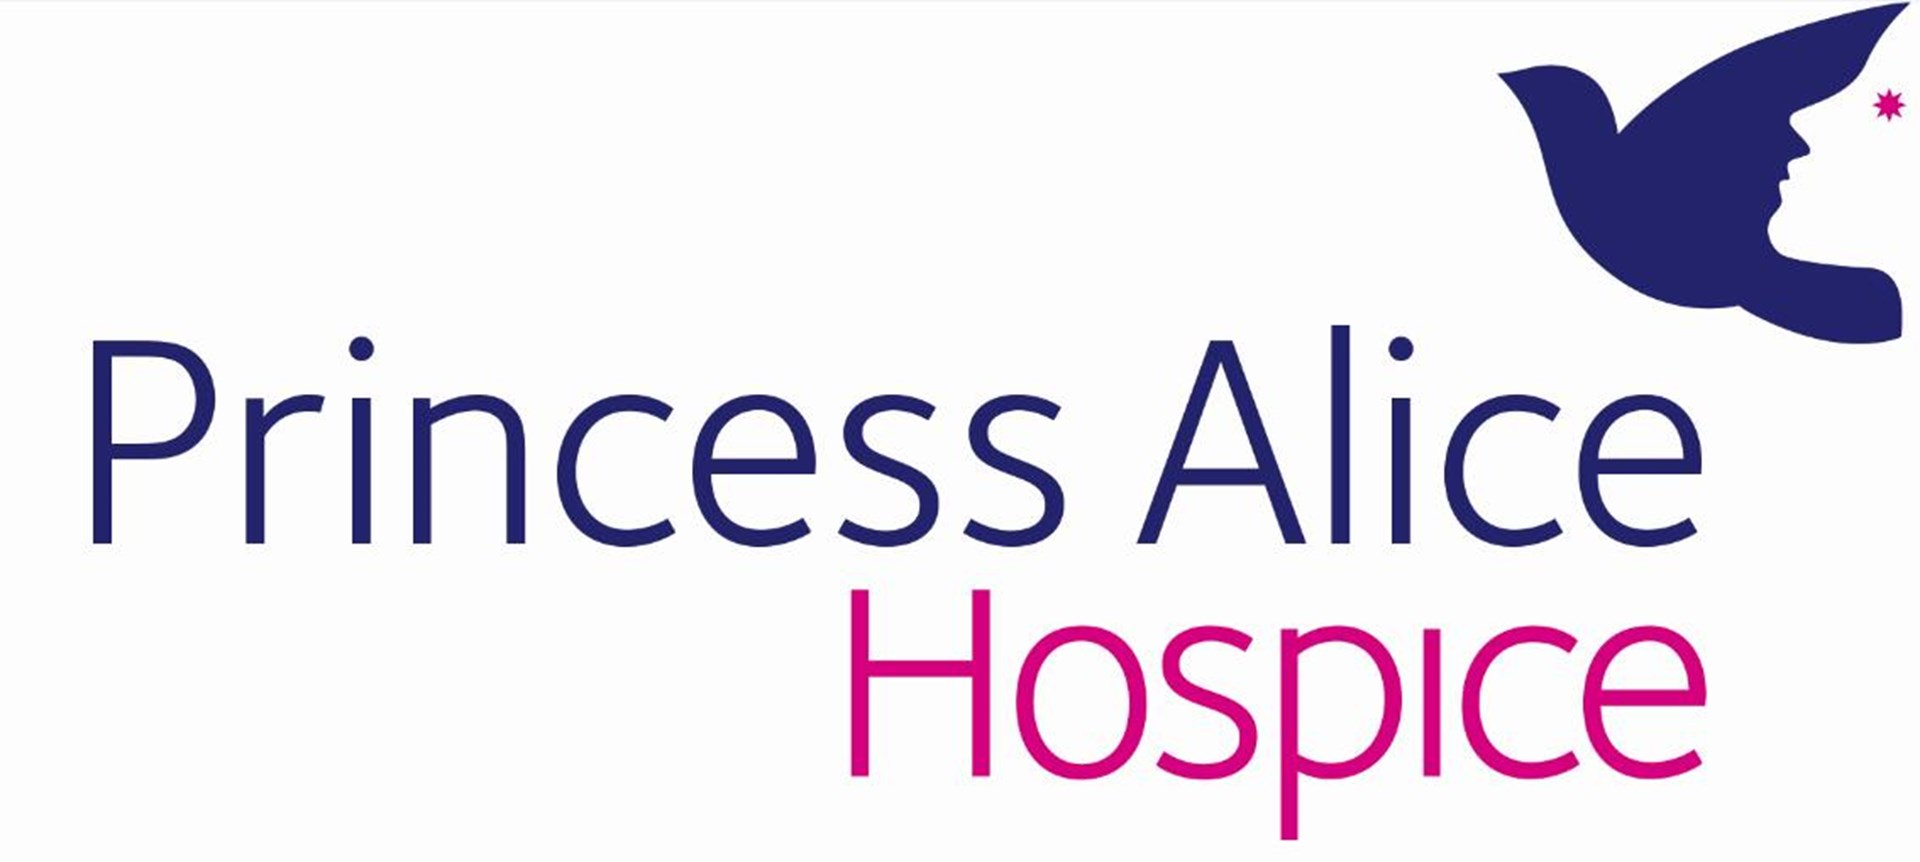 Accrue Workplaces Supports Local Charity, The Princess Alice Hospice | Accrue Workplaces